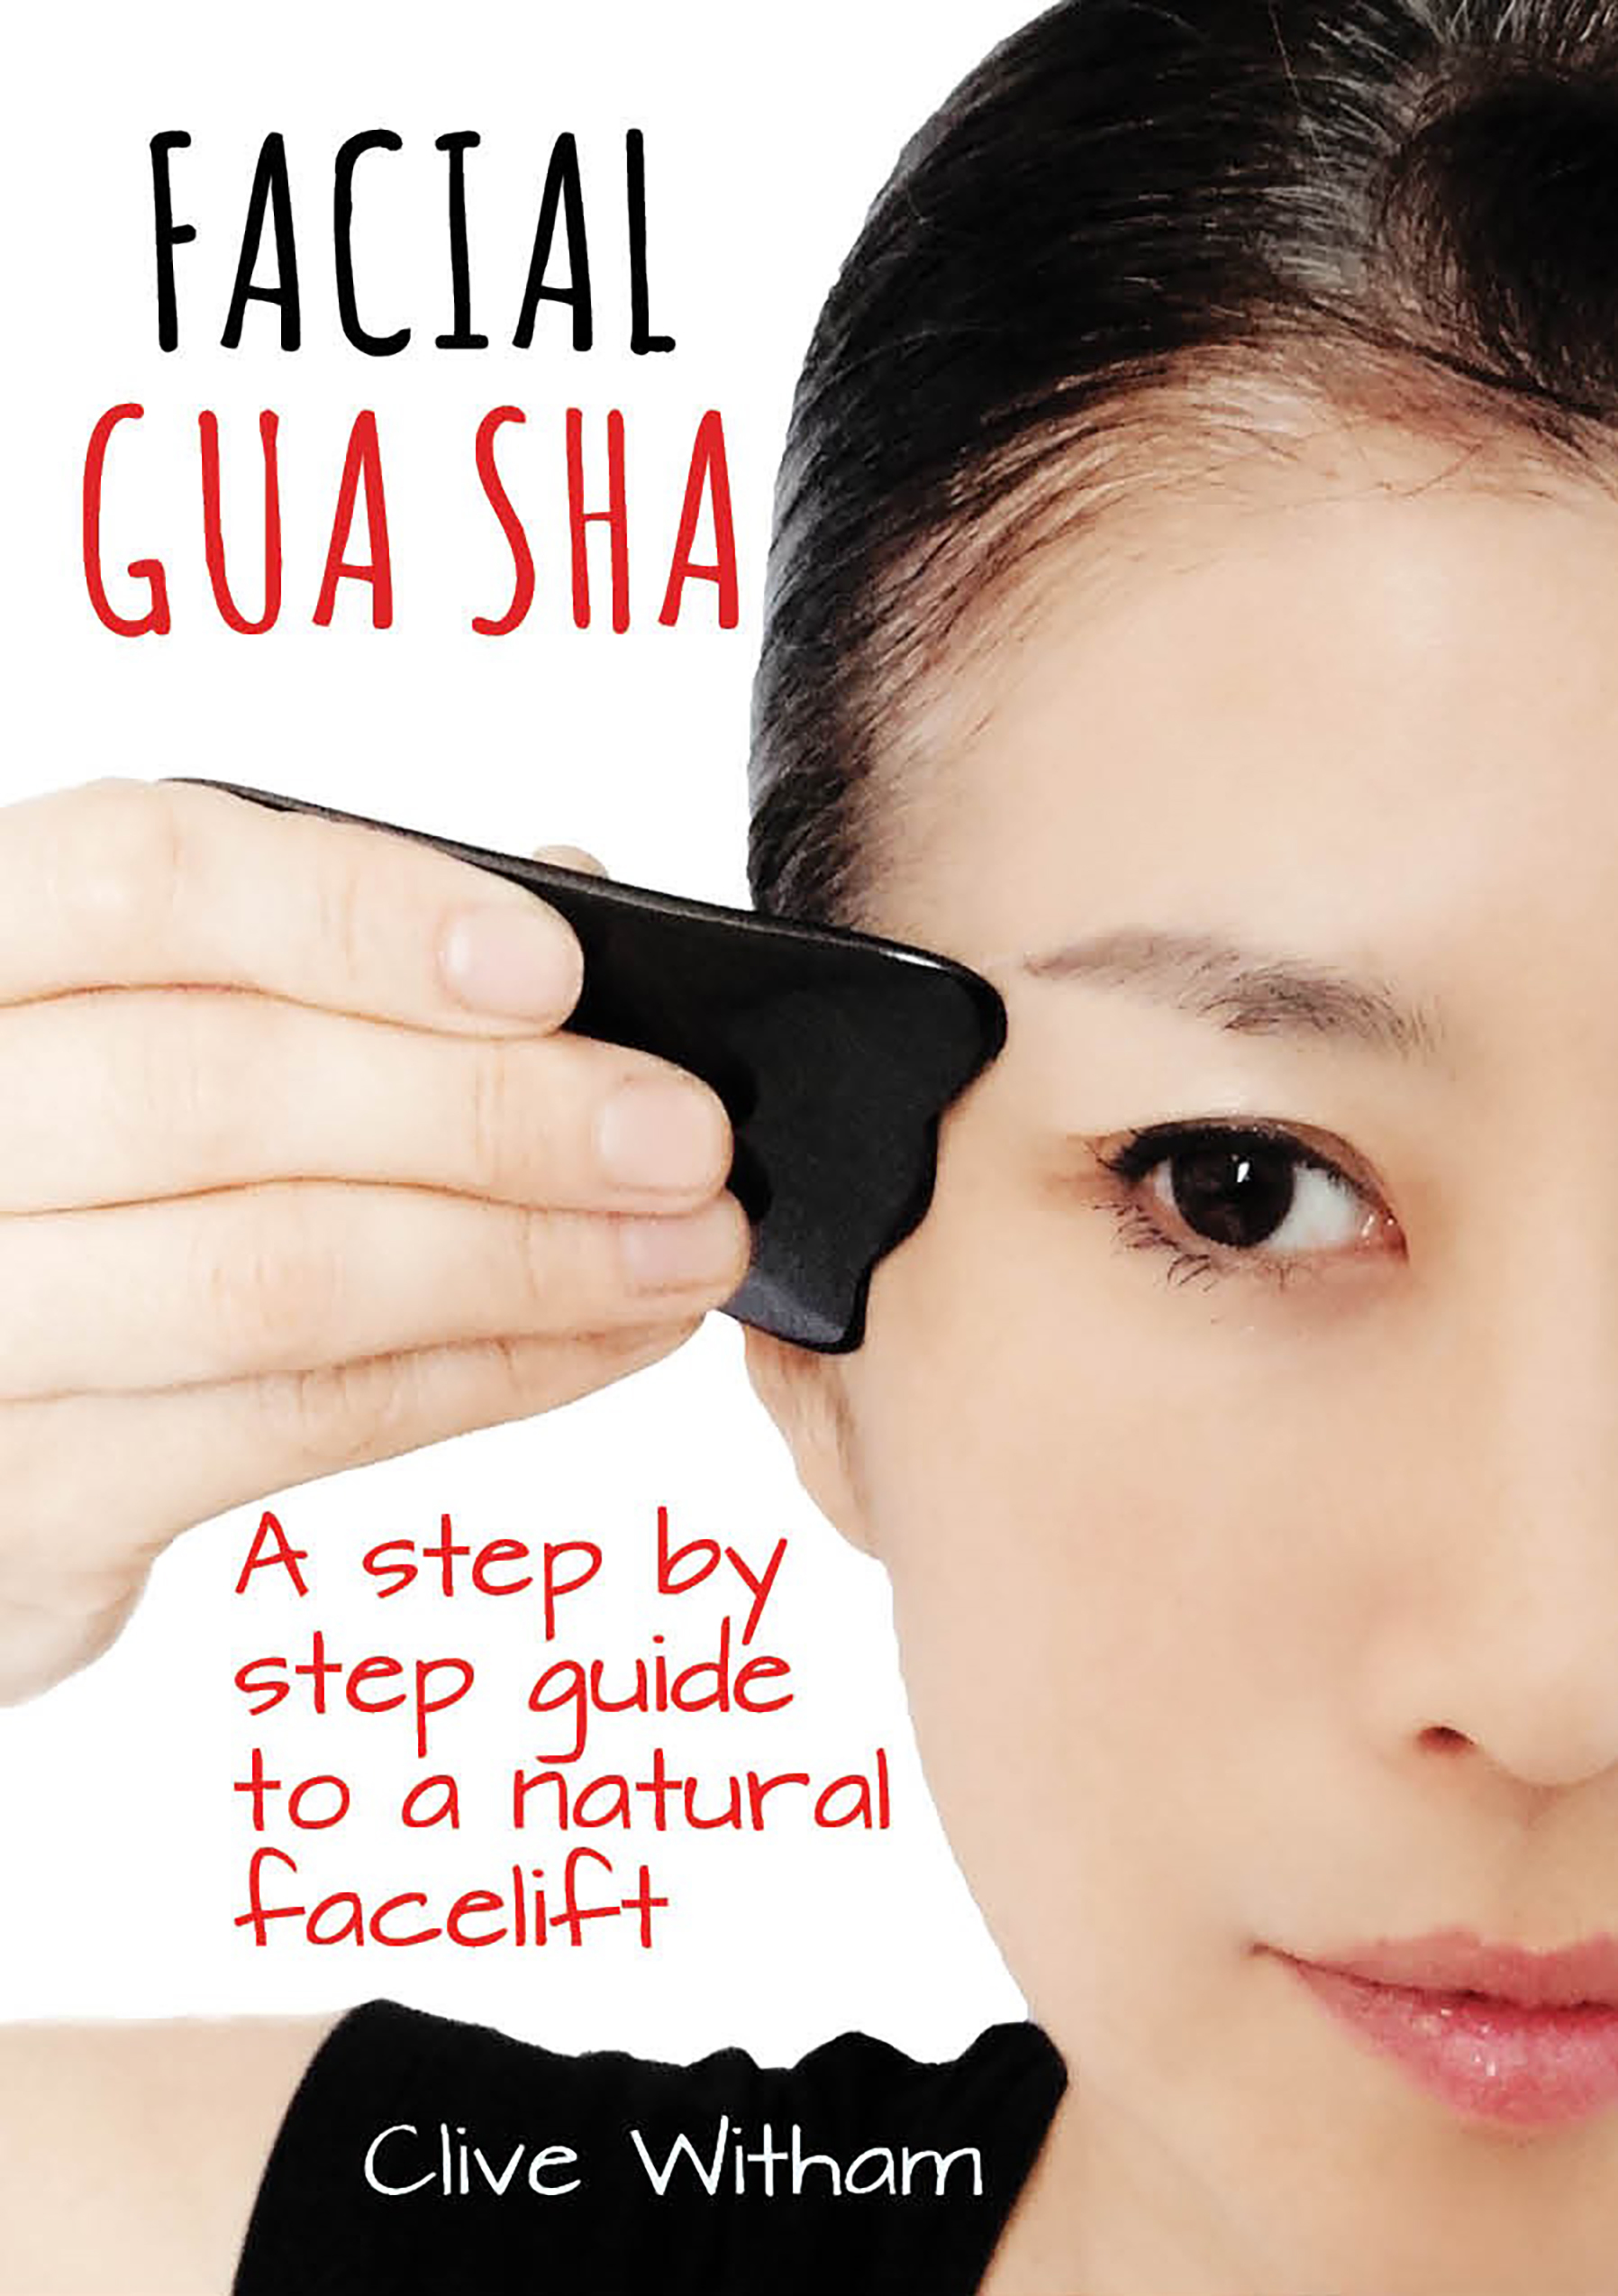 Facial Gua Sha A Step-by-step Guide to a Natural Facelift